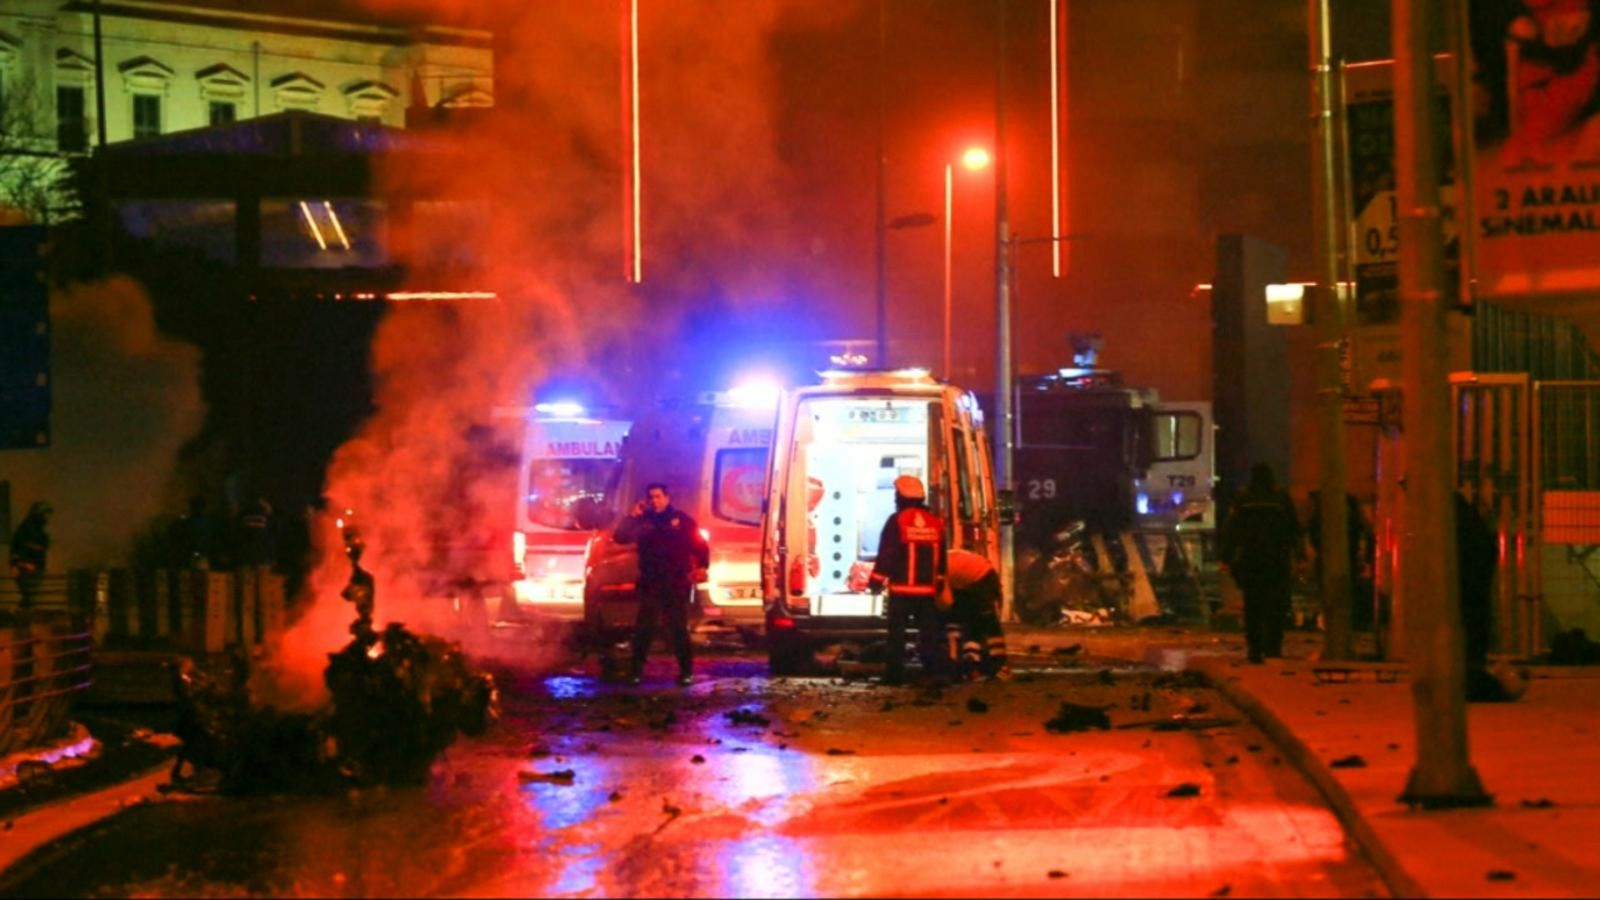 VIDEO: Powerful Twin Explosions Occur Outside Major Soccer Stadium in Istanbul, Turkey